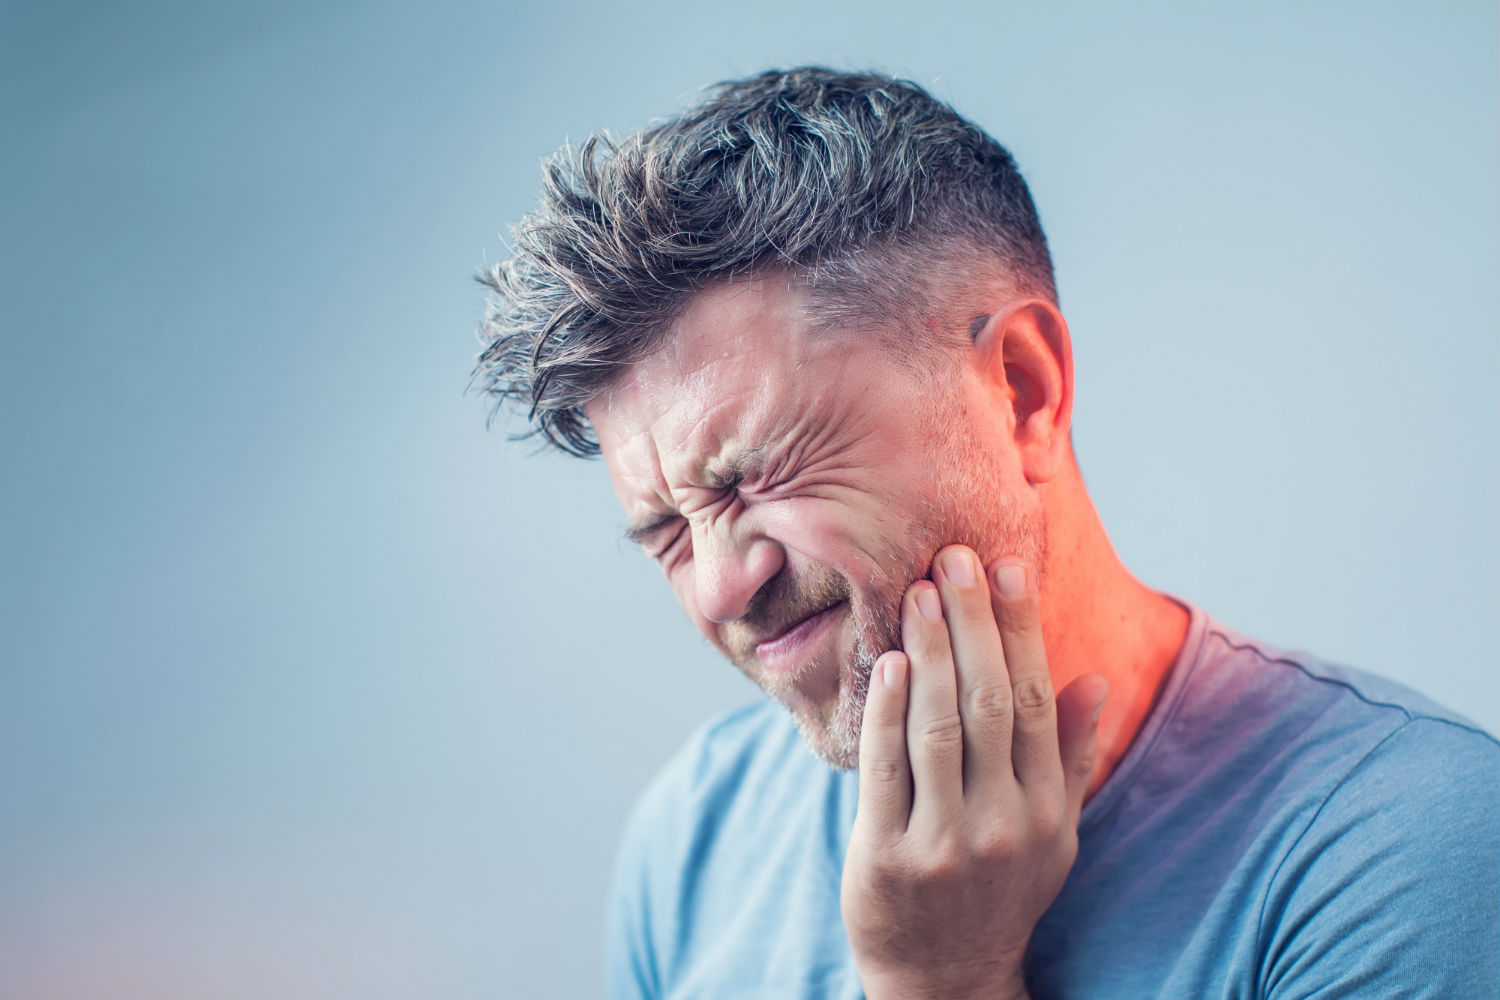 If you have a toothache in Bardstown, you may be wondering if your condition counts as a dental emergency. Can you get same-day emergency care from Walton Family Dentistry, or should you wait to schedule a normal appointment?